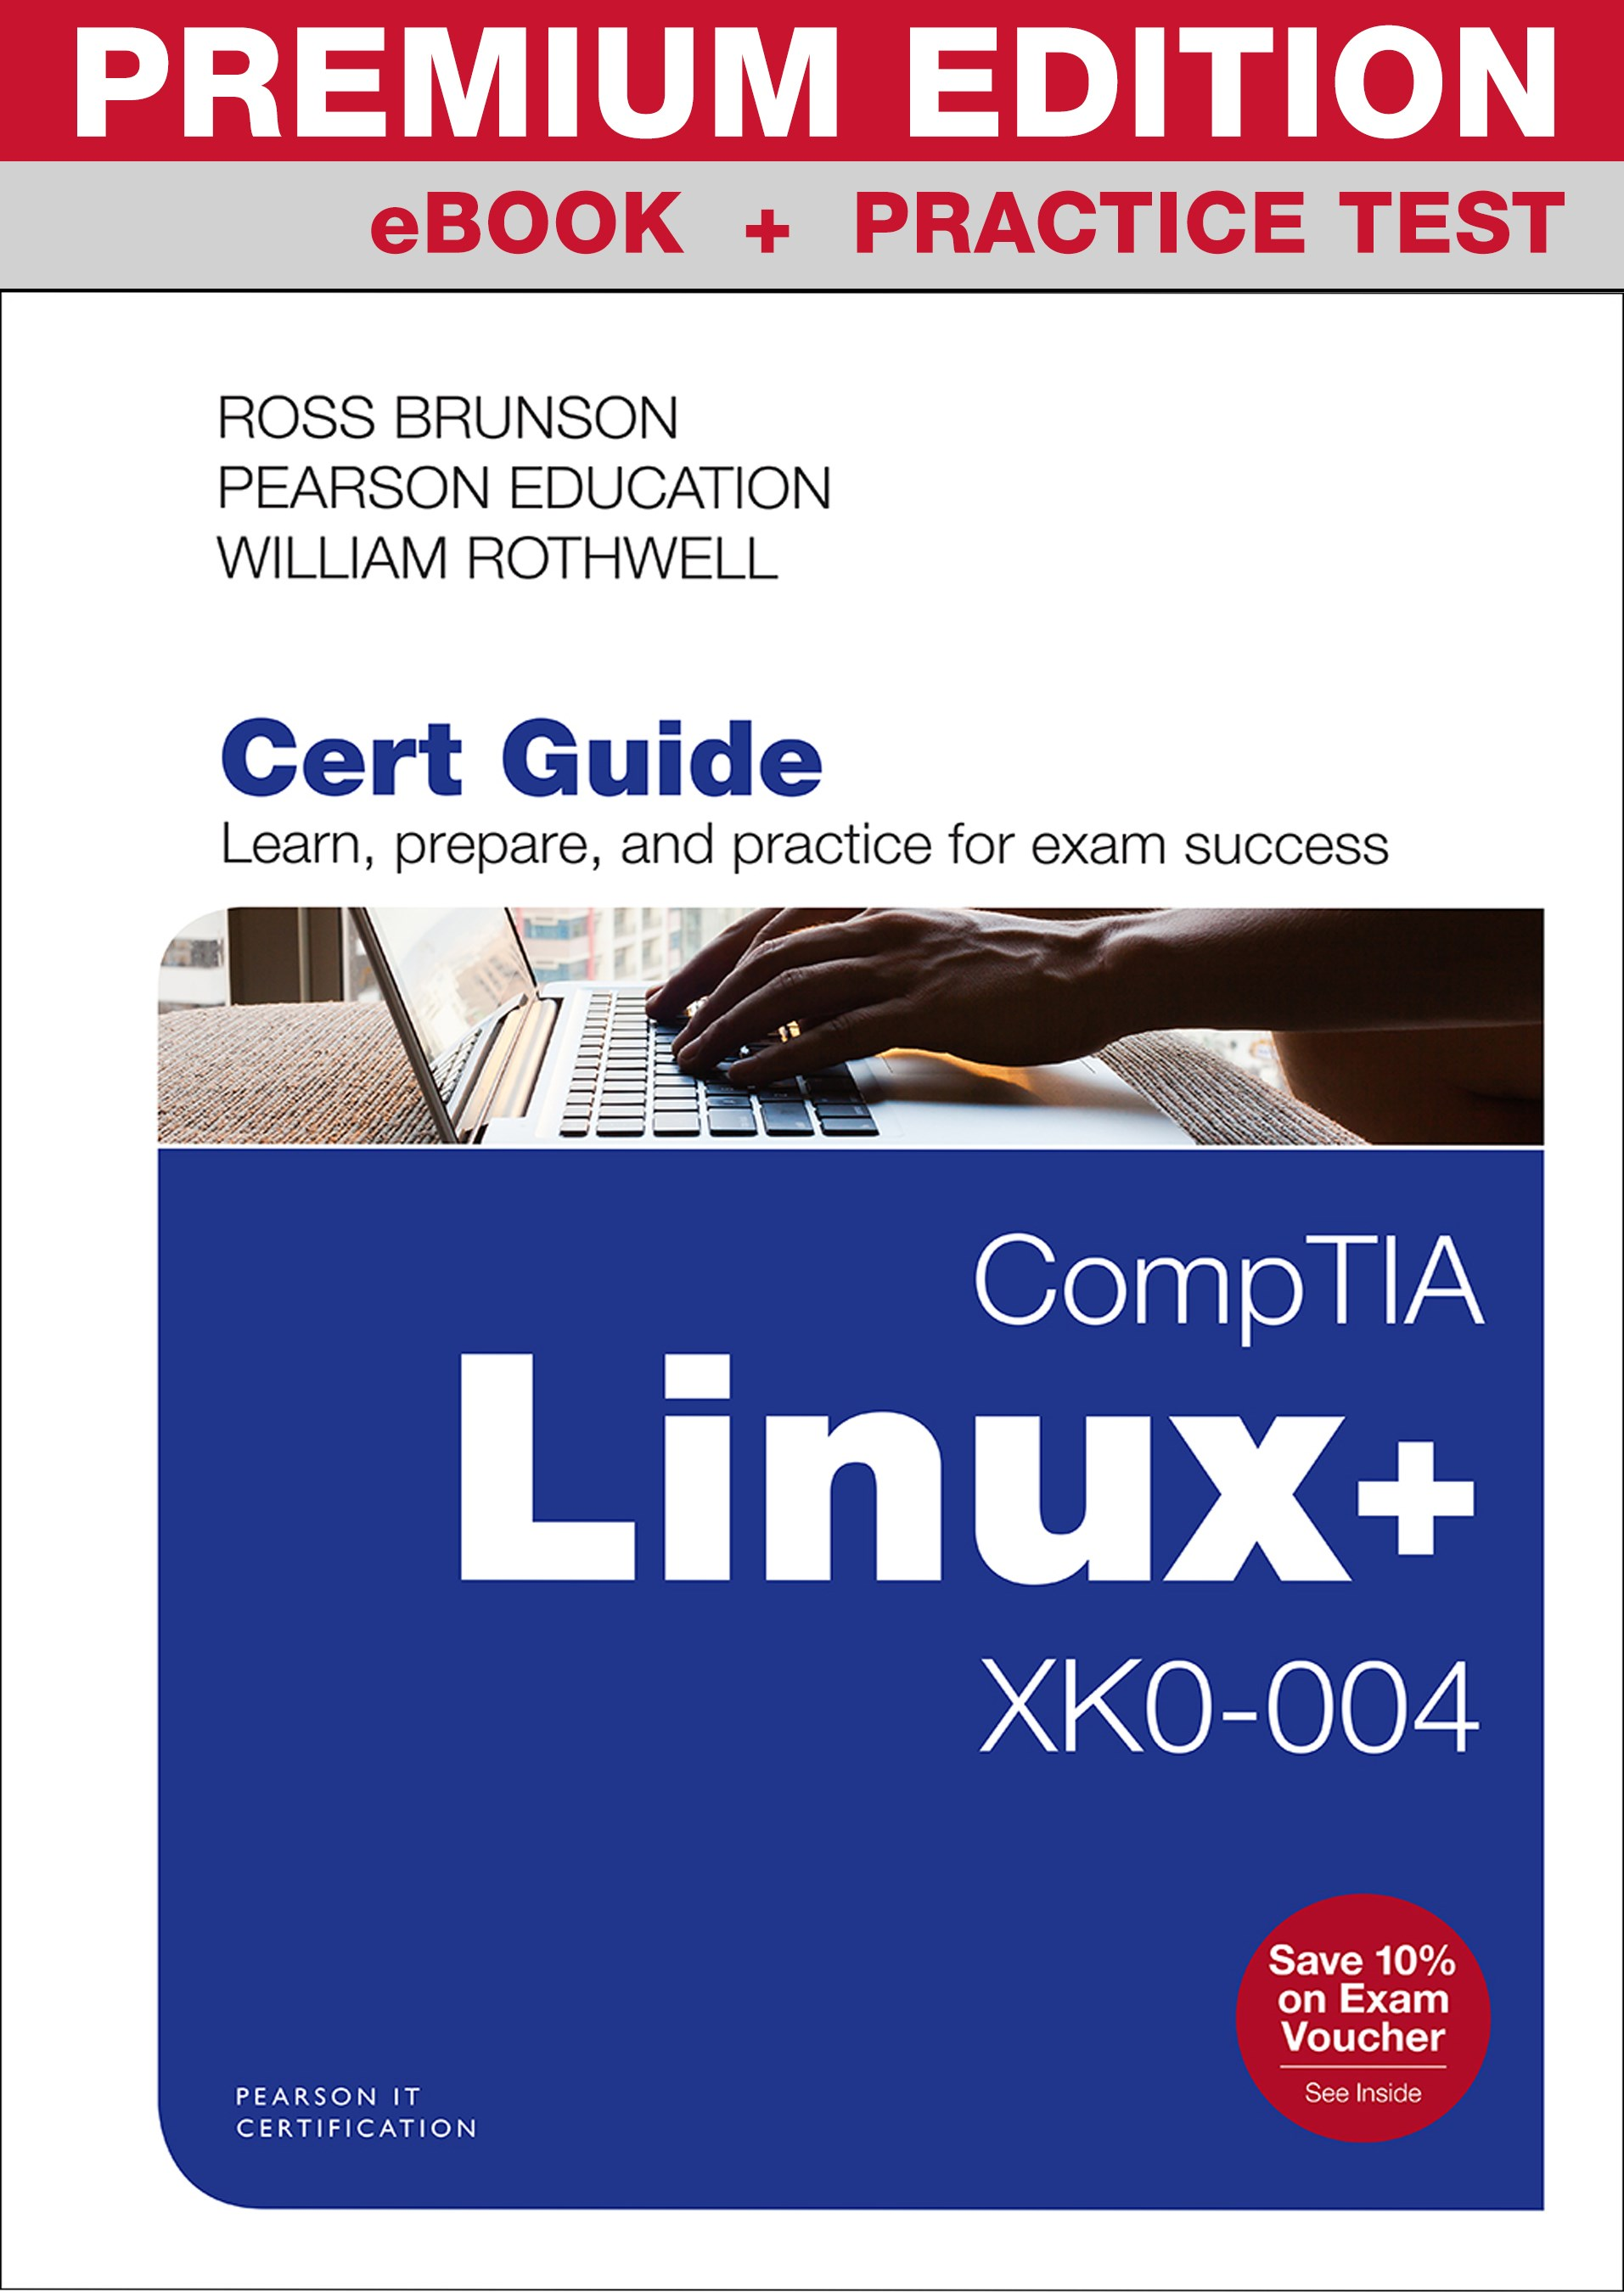 CompTIA Linux+ XK0-004 Cert Guide Premium Edition and Practice Tests, 2nd Edition